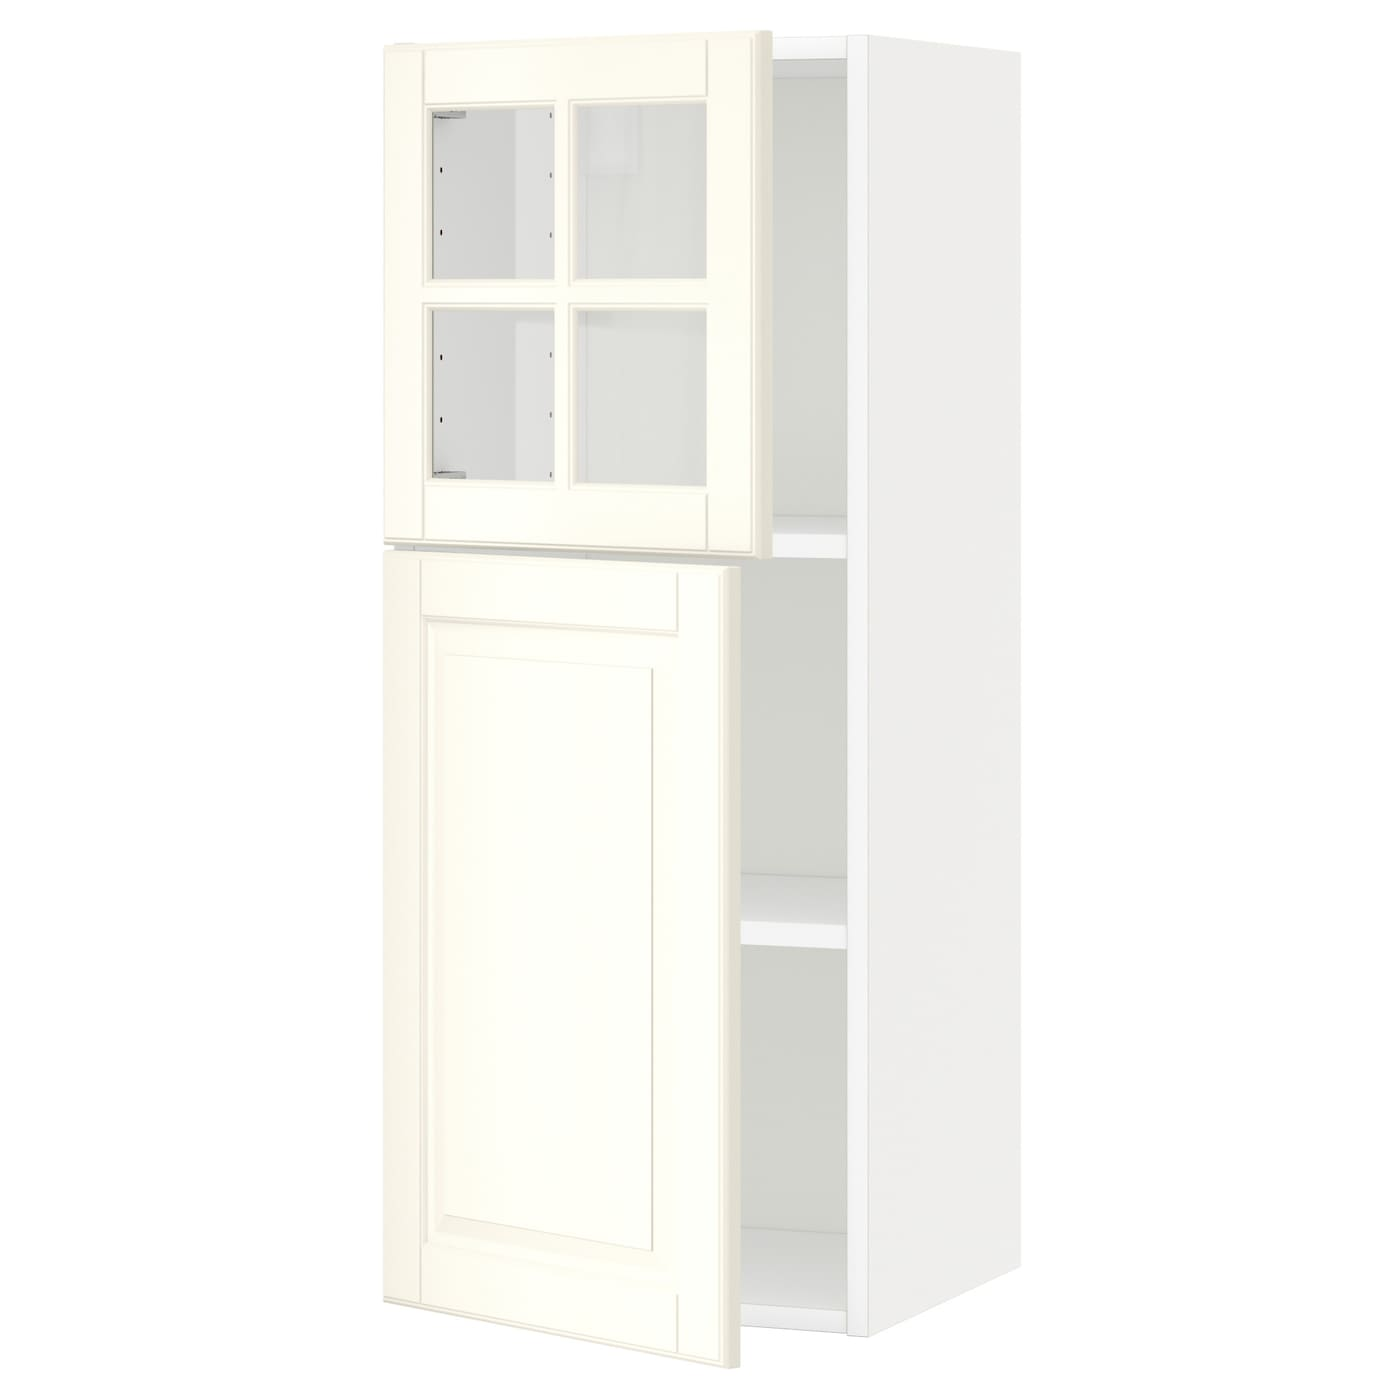 Interior Wall Cabinet Ikea wall cabinets kitchen units ikea metod cab w shelvesdoorglass door sturdy frame construction 18